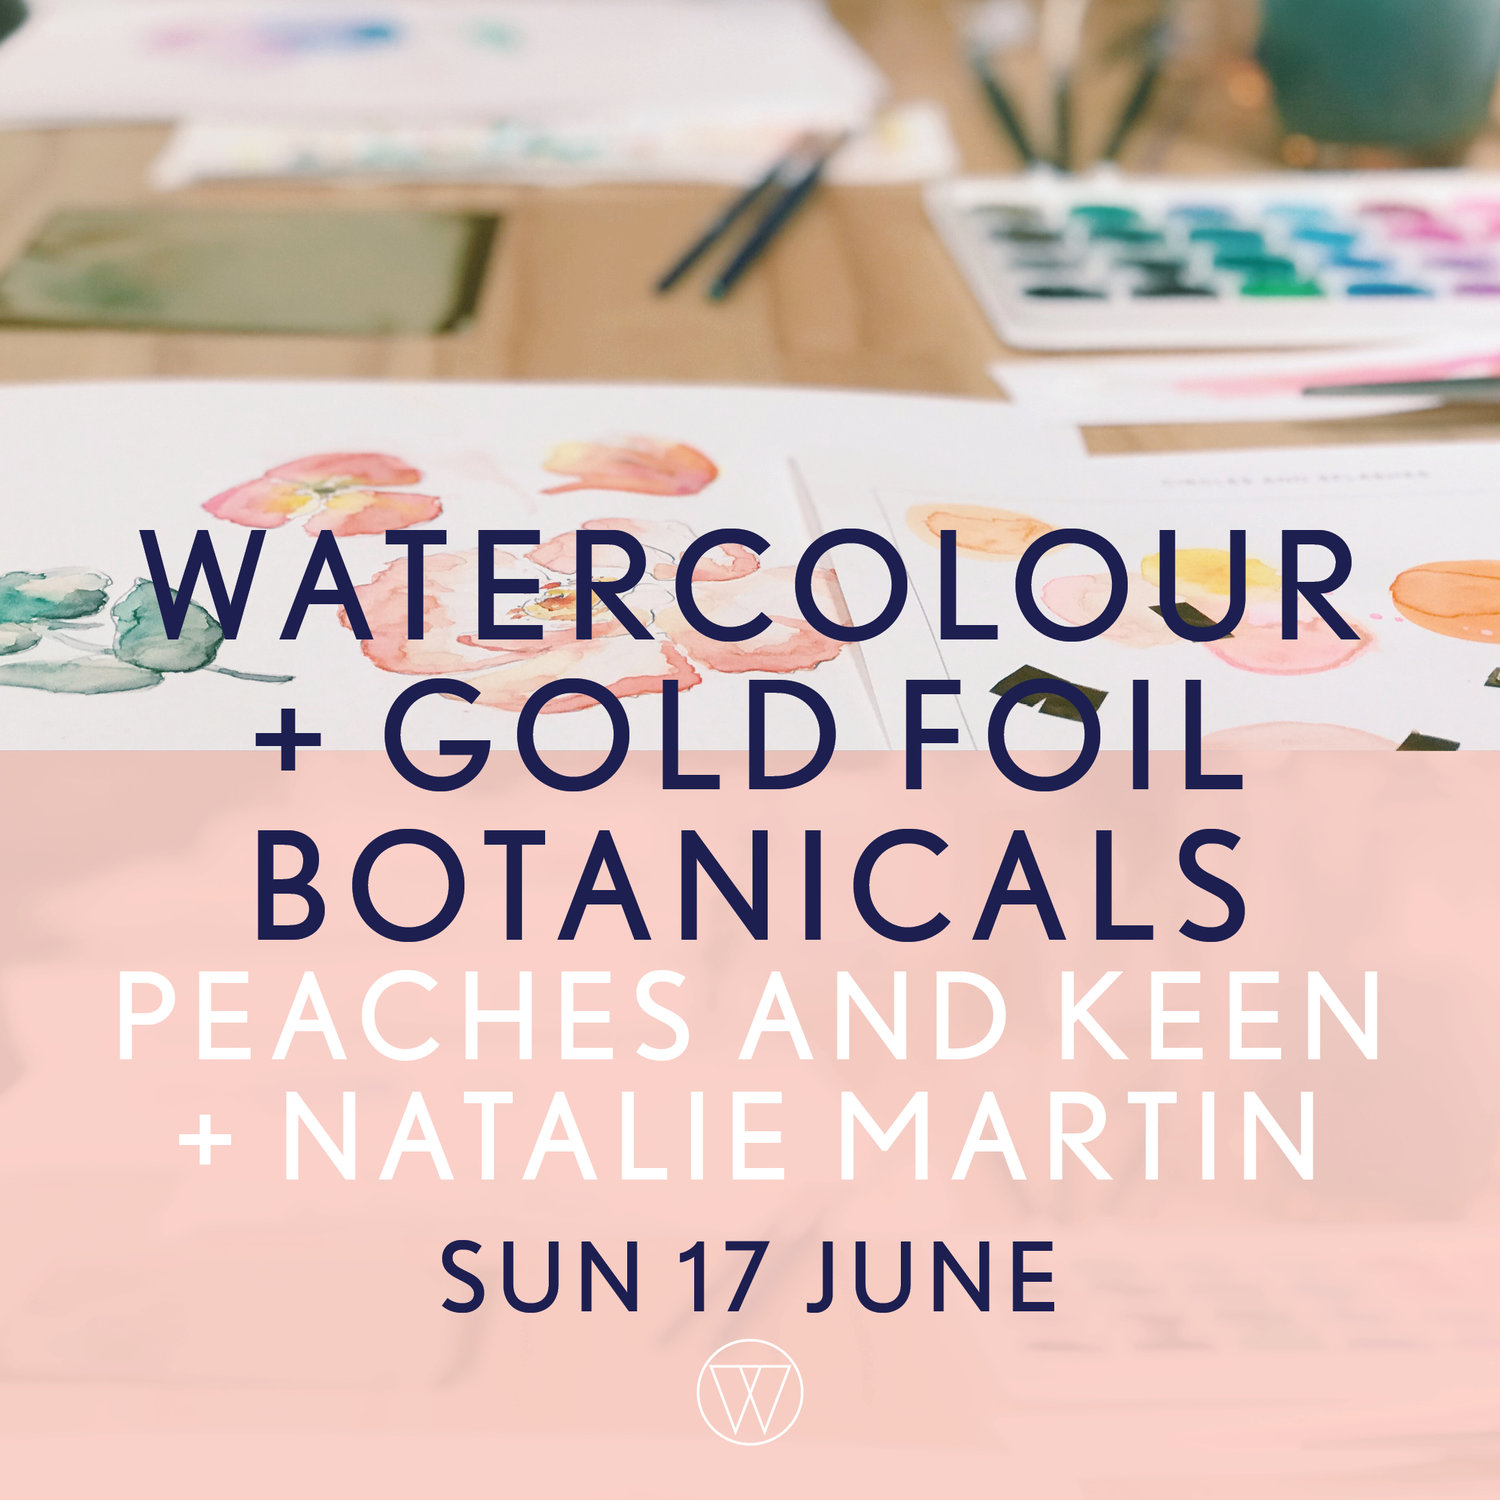 Watercolour and Gold Foil Botanicals with Natalie Martin and Peaches